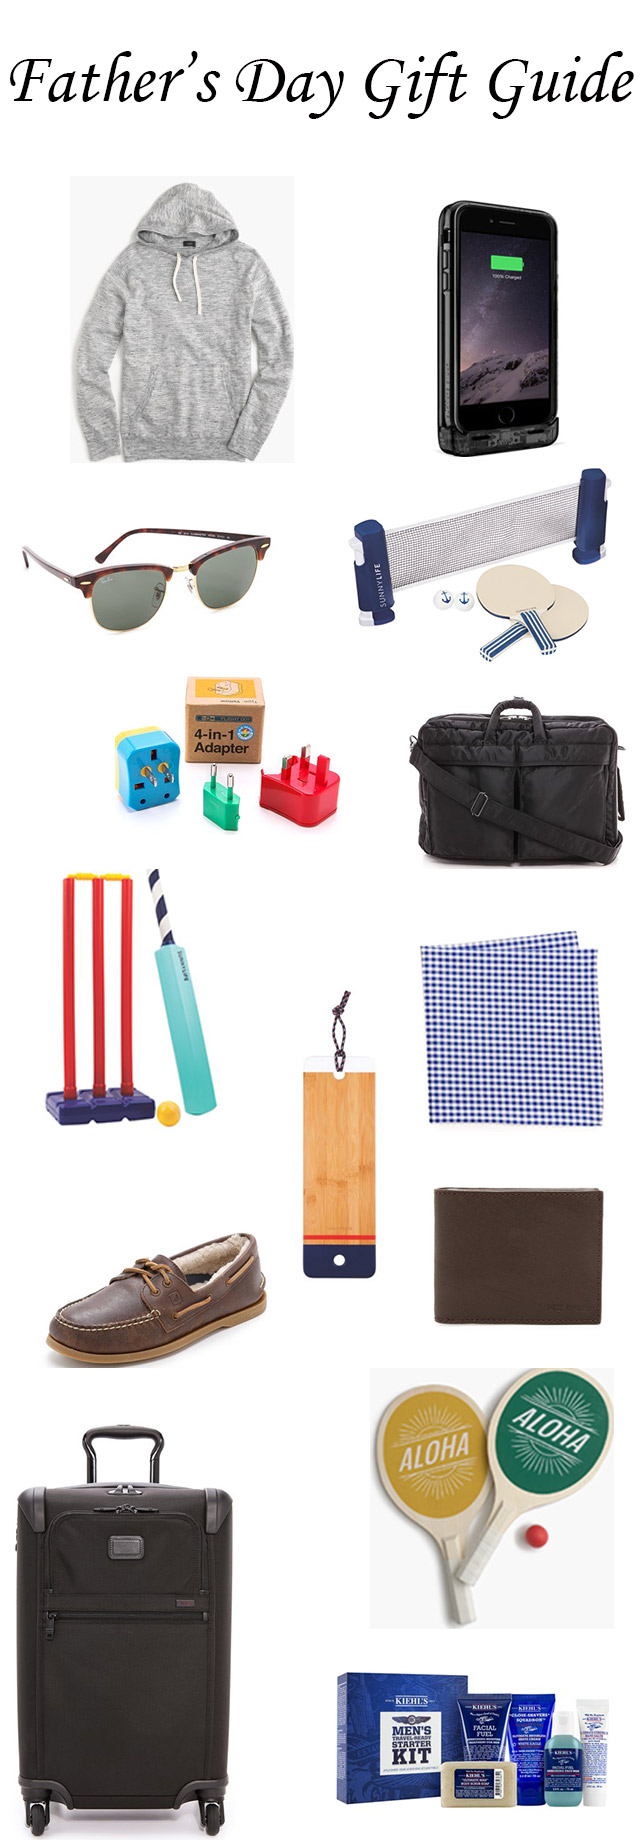 cfc-fathers-day-gift-guide-2016